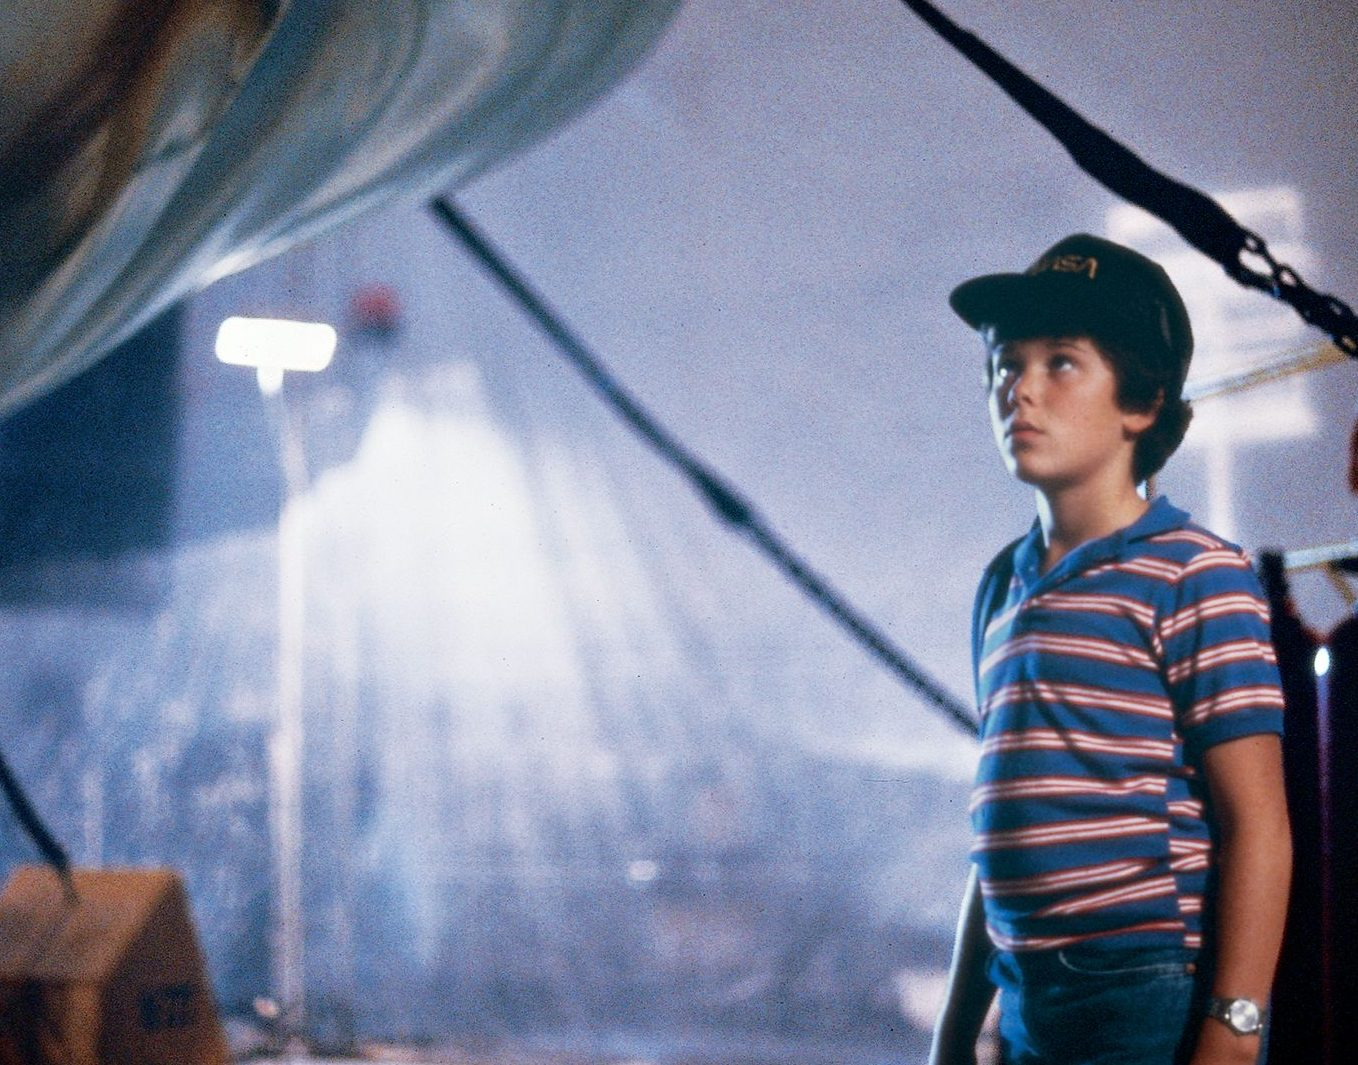 scale e1621331946664 21 Things You Might Not Have Realised About Flight Of The Navigator